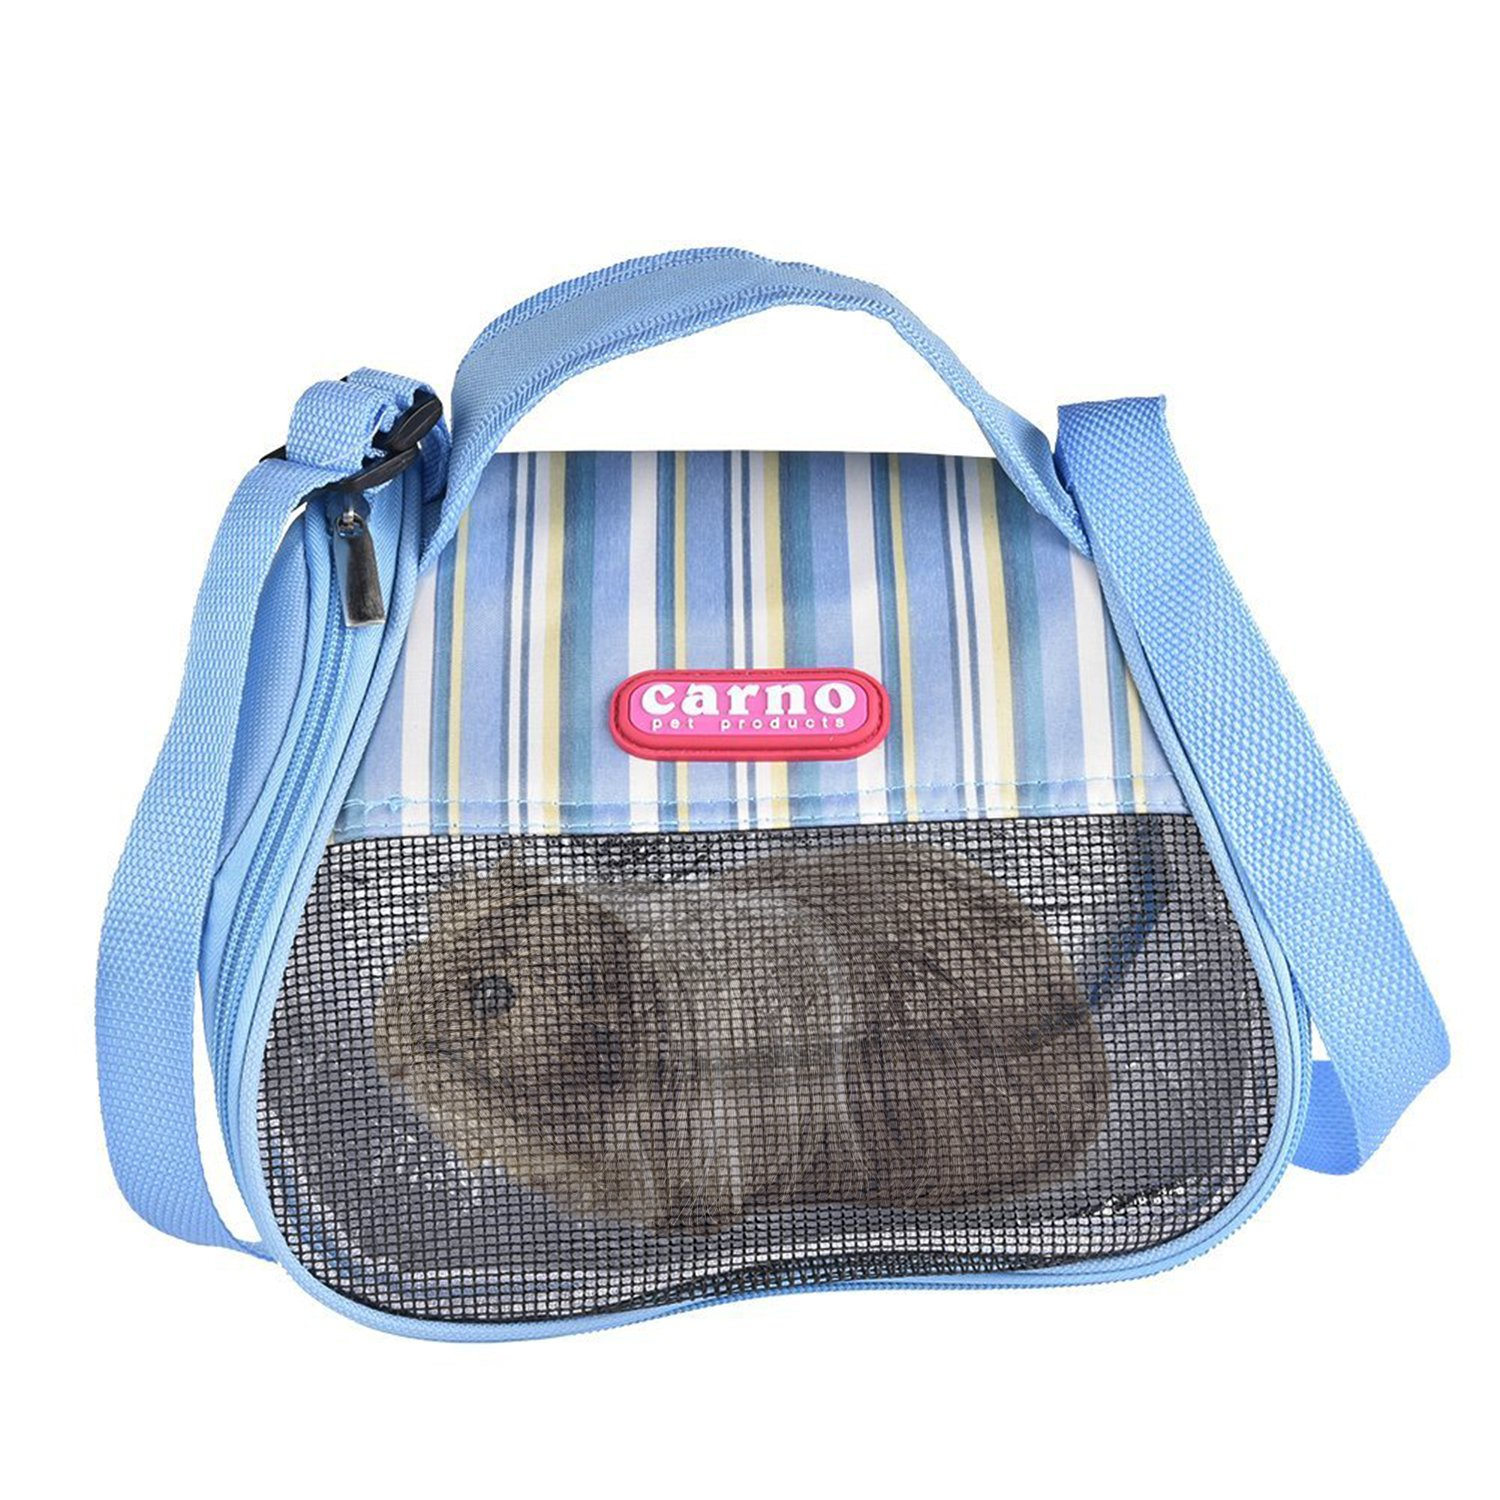 RYPET Hamster Carrier Bag - Portable Breathable Outgoing Bag for Guinea Pig Hedgehog Squirrel Chinchilla and Other Similar Sized Animal